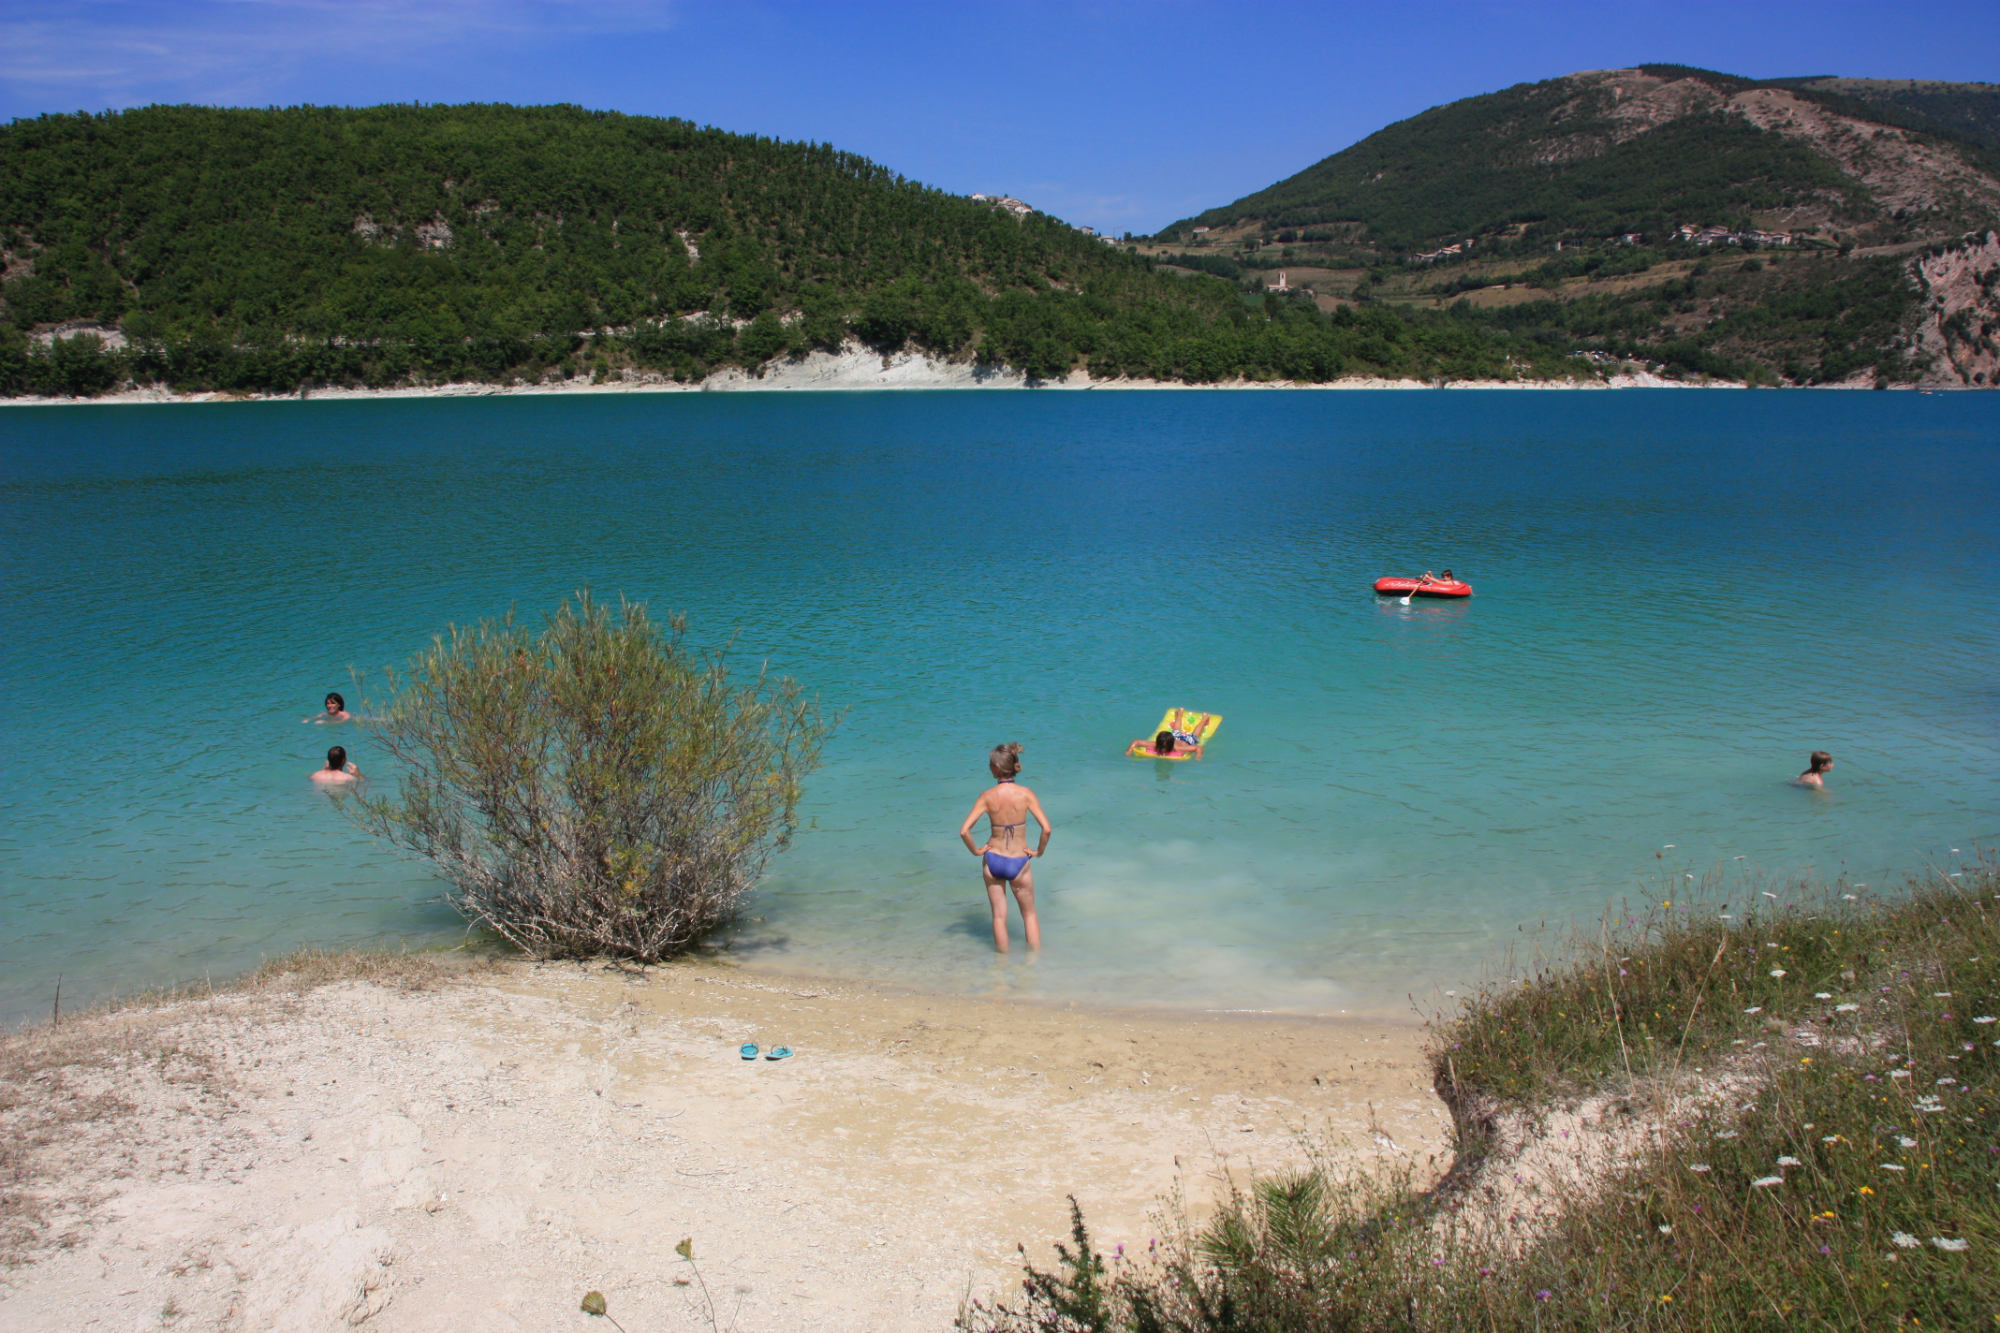 lake fiastra in the water